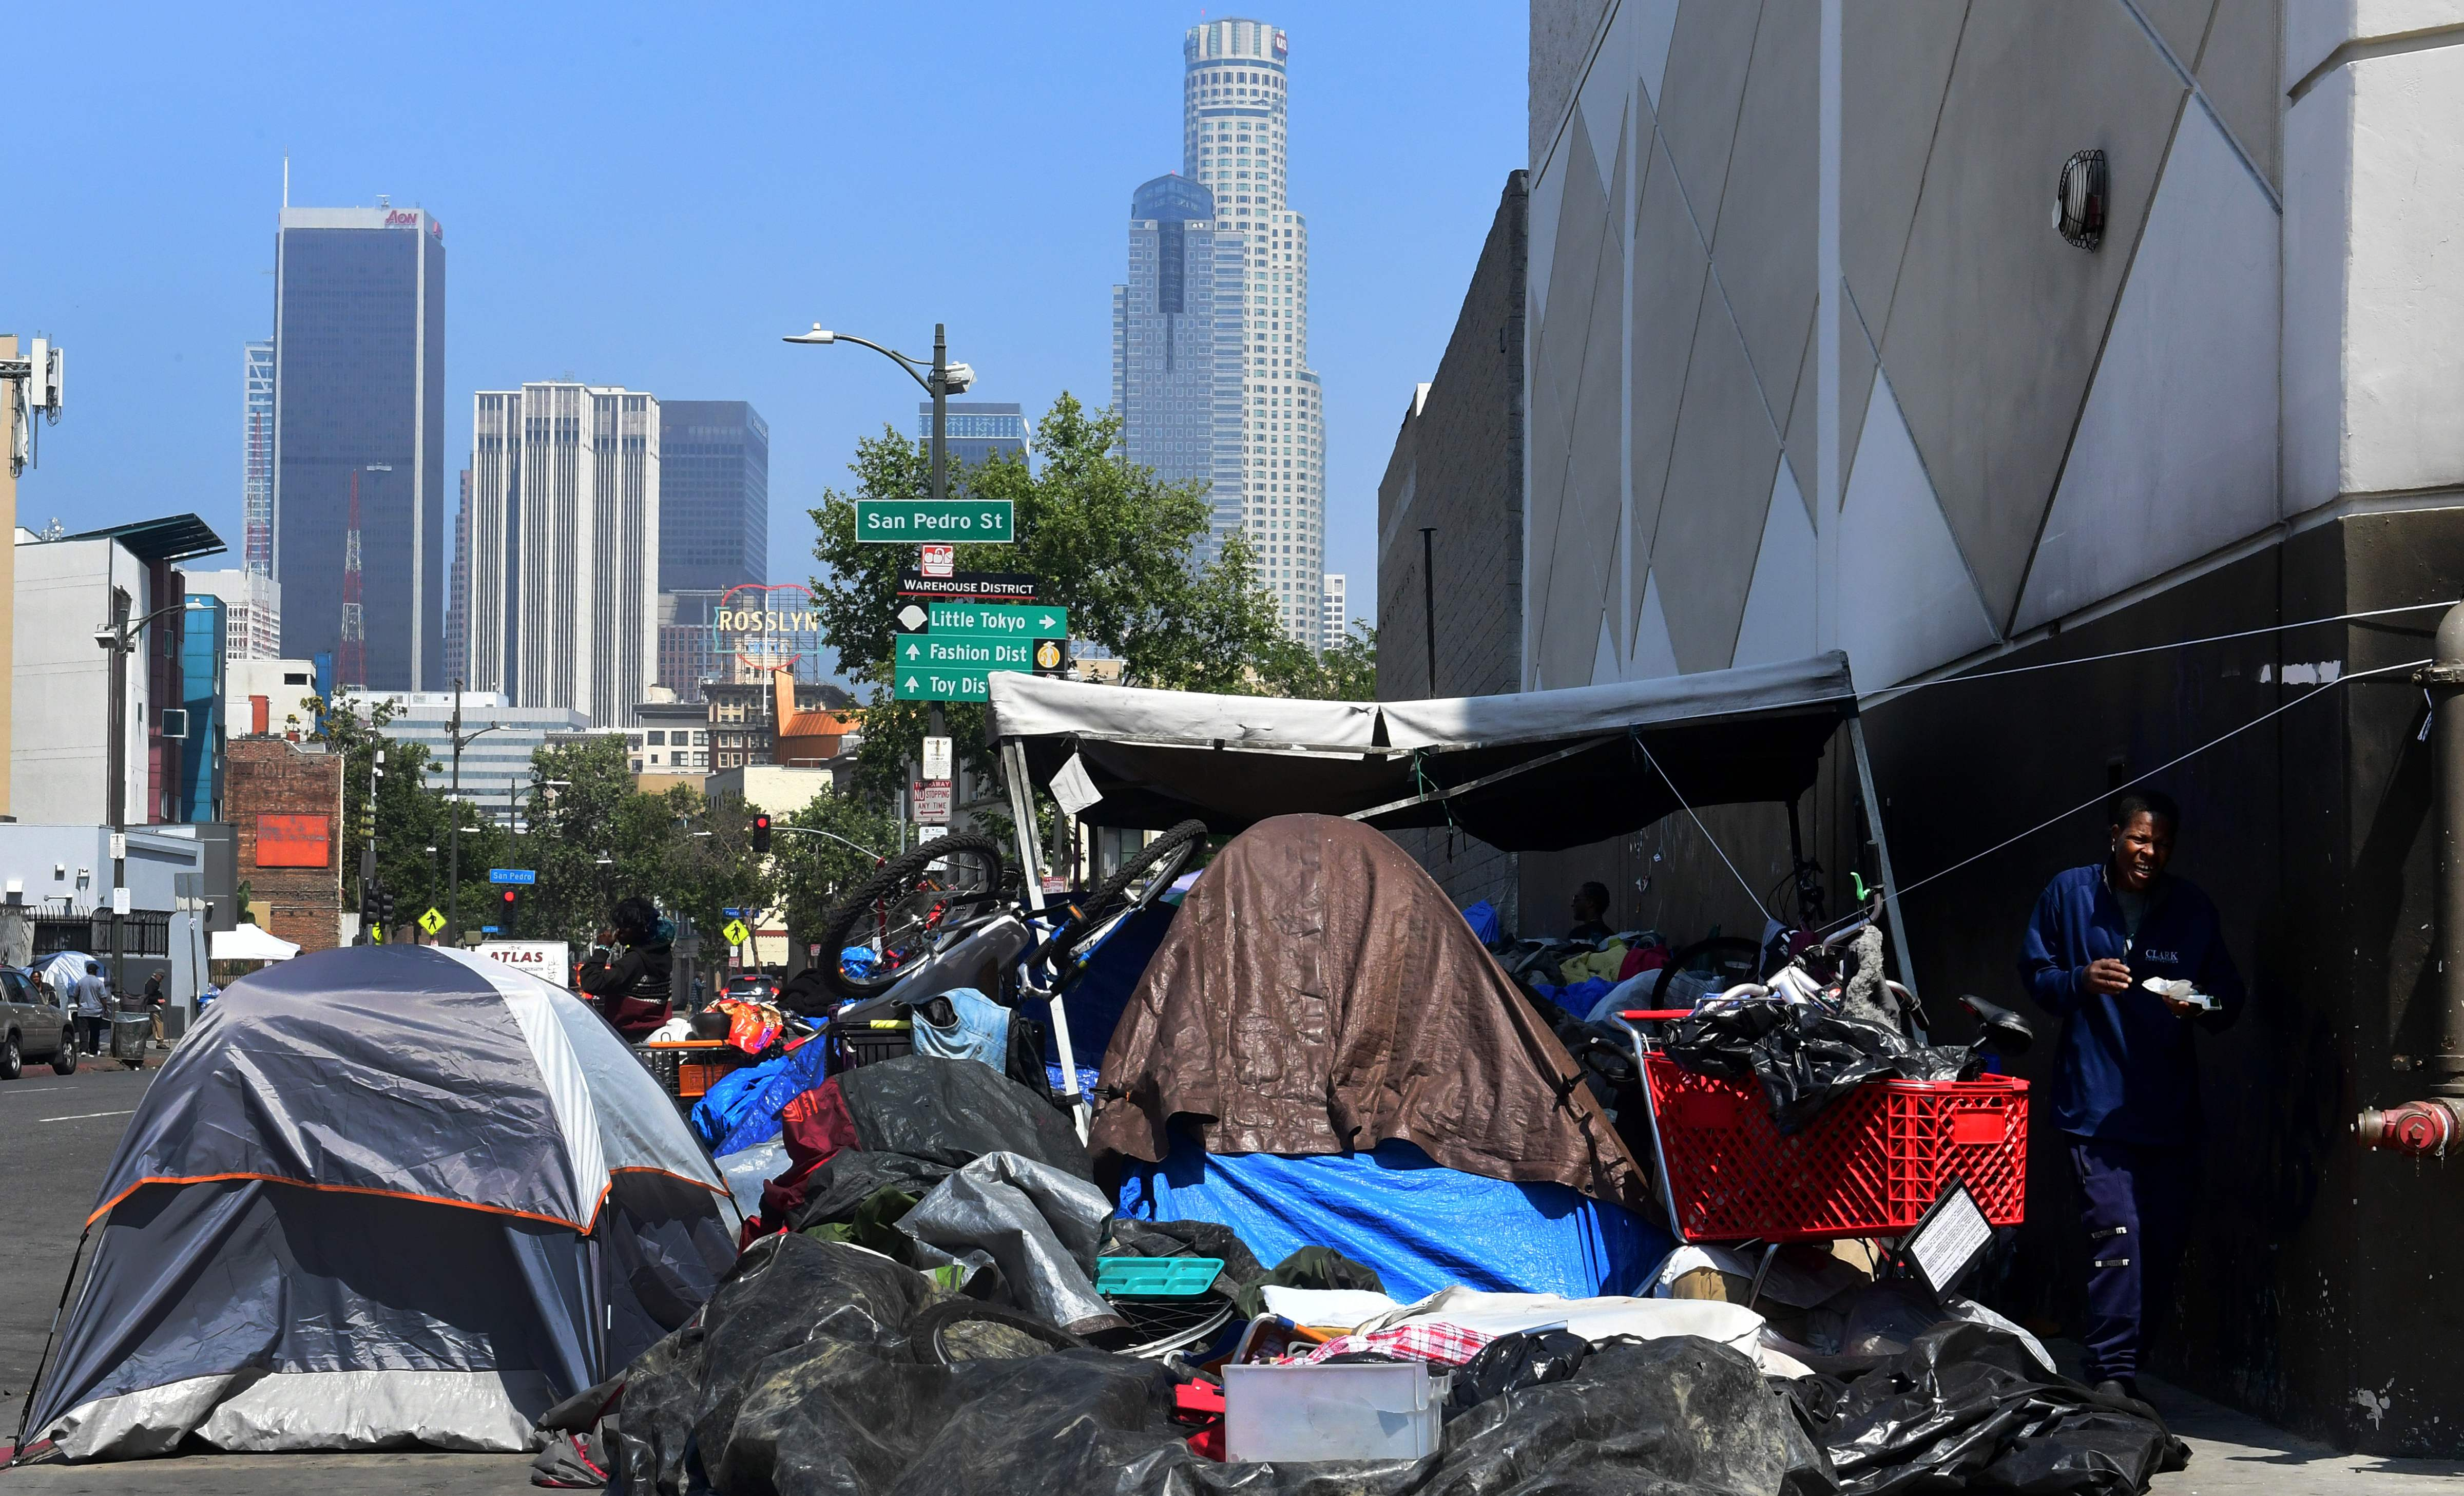 Bug infestations, tent-lined streets: California s homelessness crisis is at a tipping point. Will a $12B plan put a dent in it?